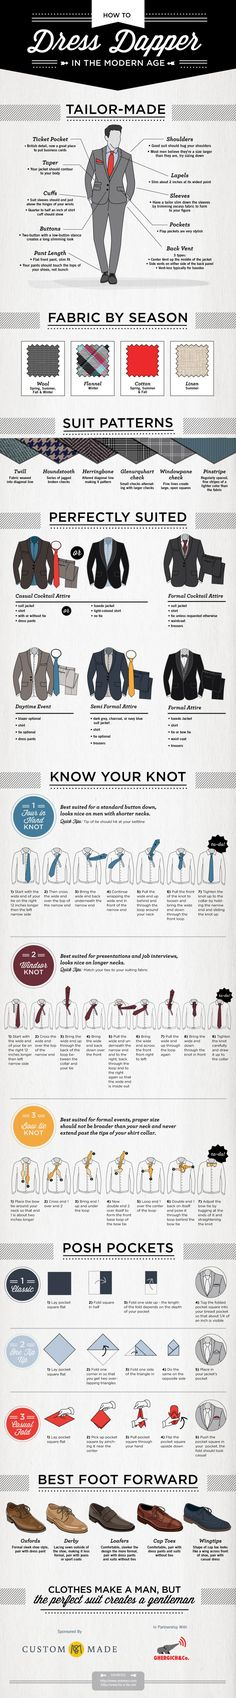 "While women's styles vary greatly between seasons, a man in a suit is usually the epitome of style, unless that suit is too big, too small, or too outdated. www.custommade.com has created an infographic entitled ""How to Dress Dapper in the Modern Age"", giving you a crash course in staying stylish in your suits."